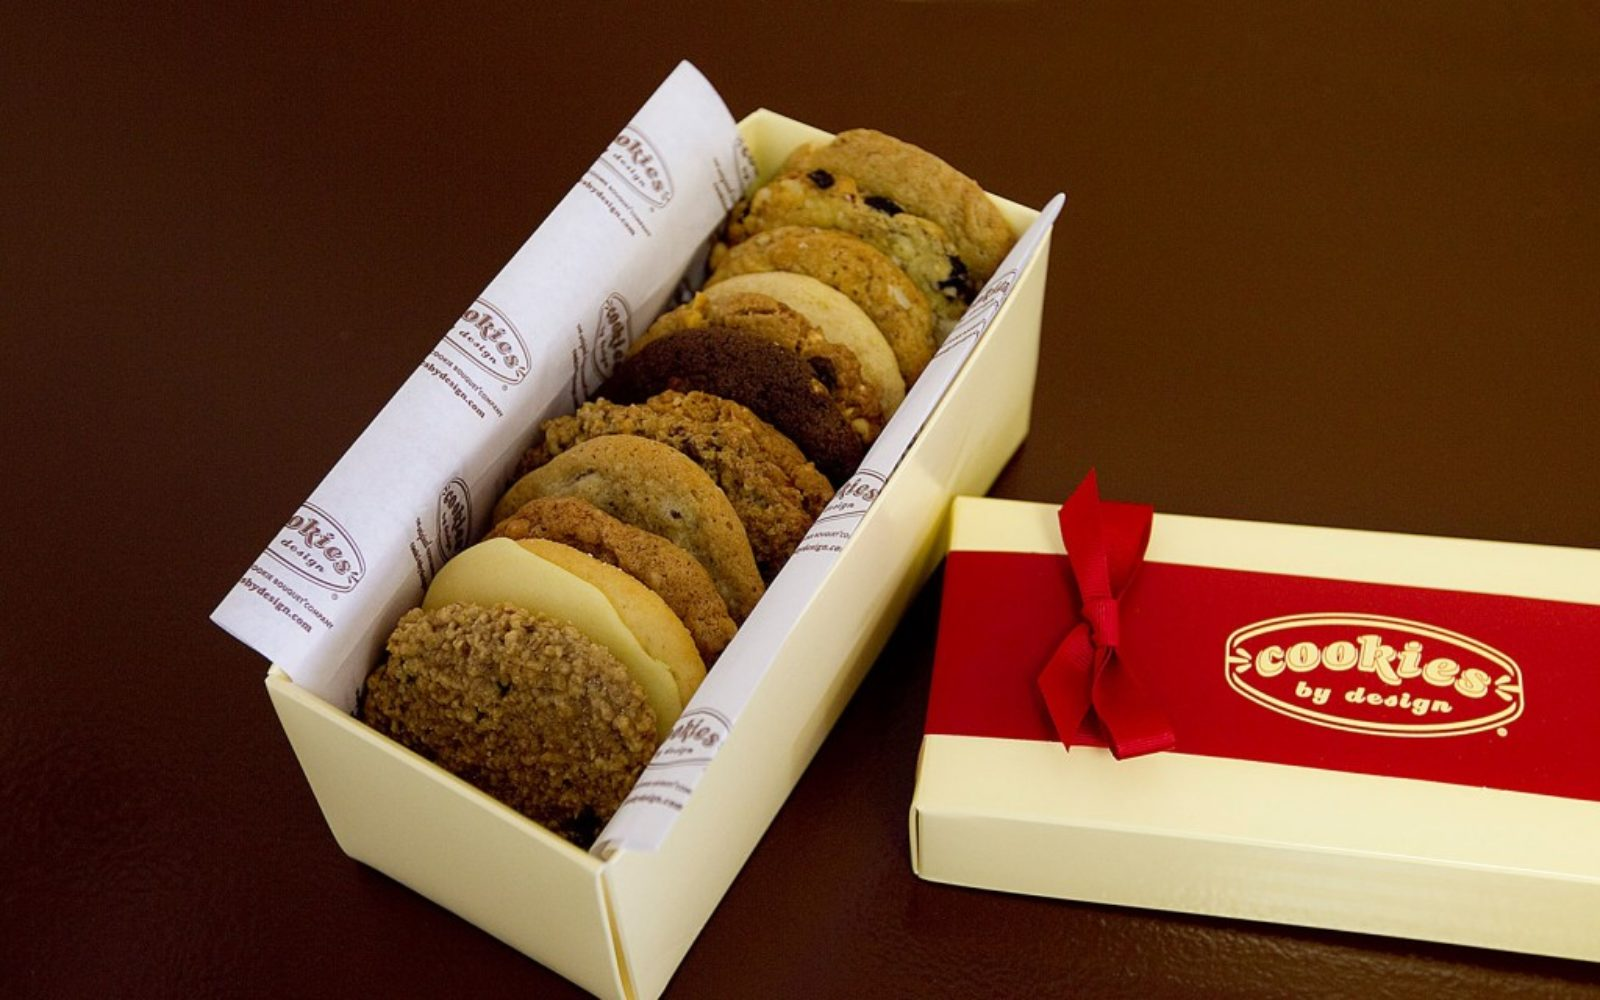 commercial-cookiesbydesign-1024x640